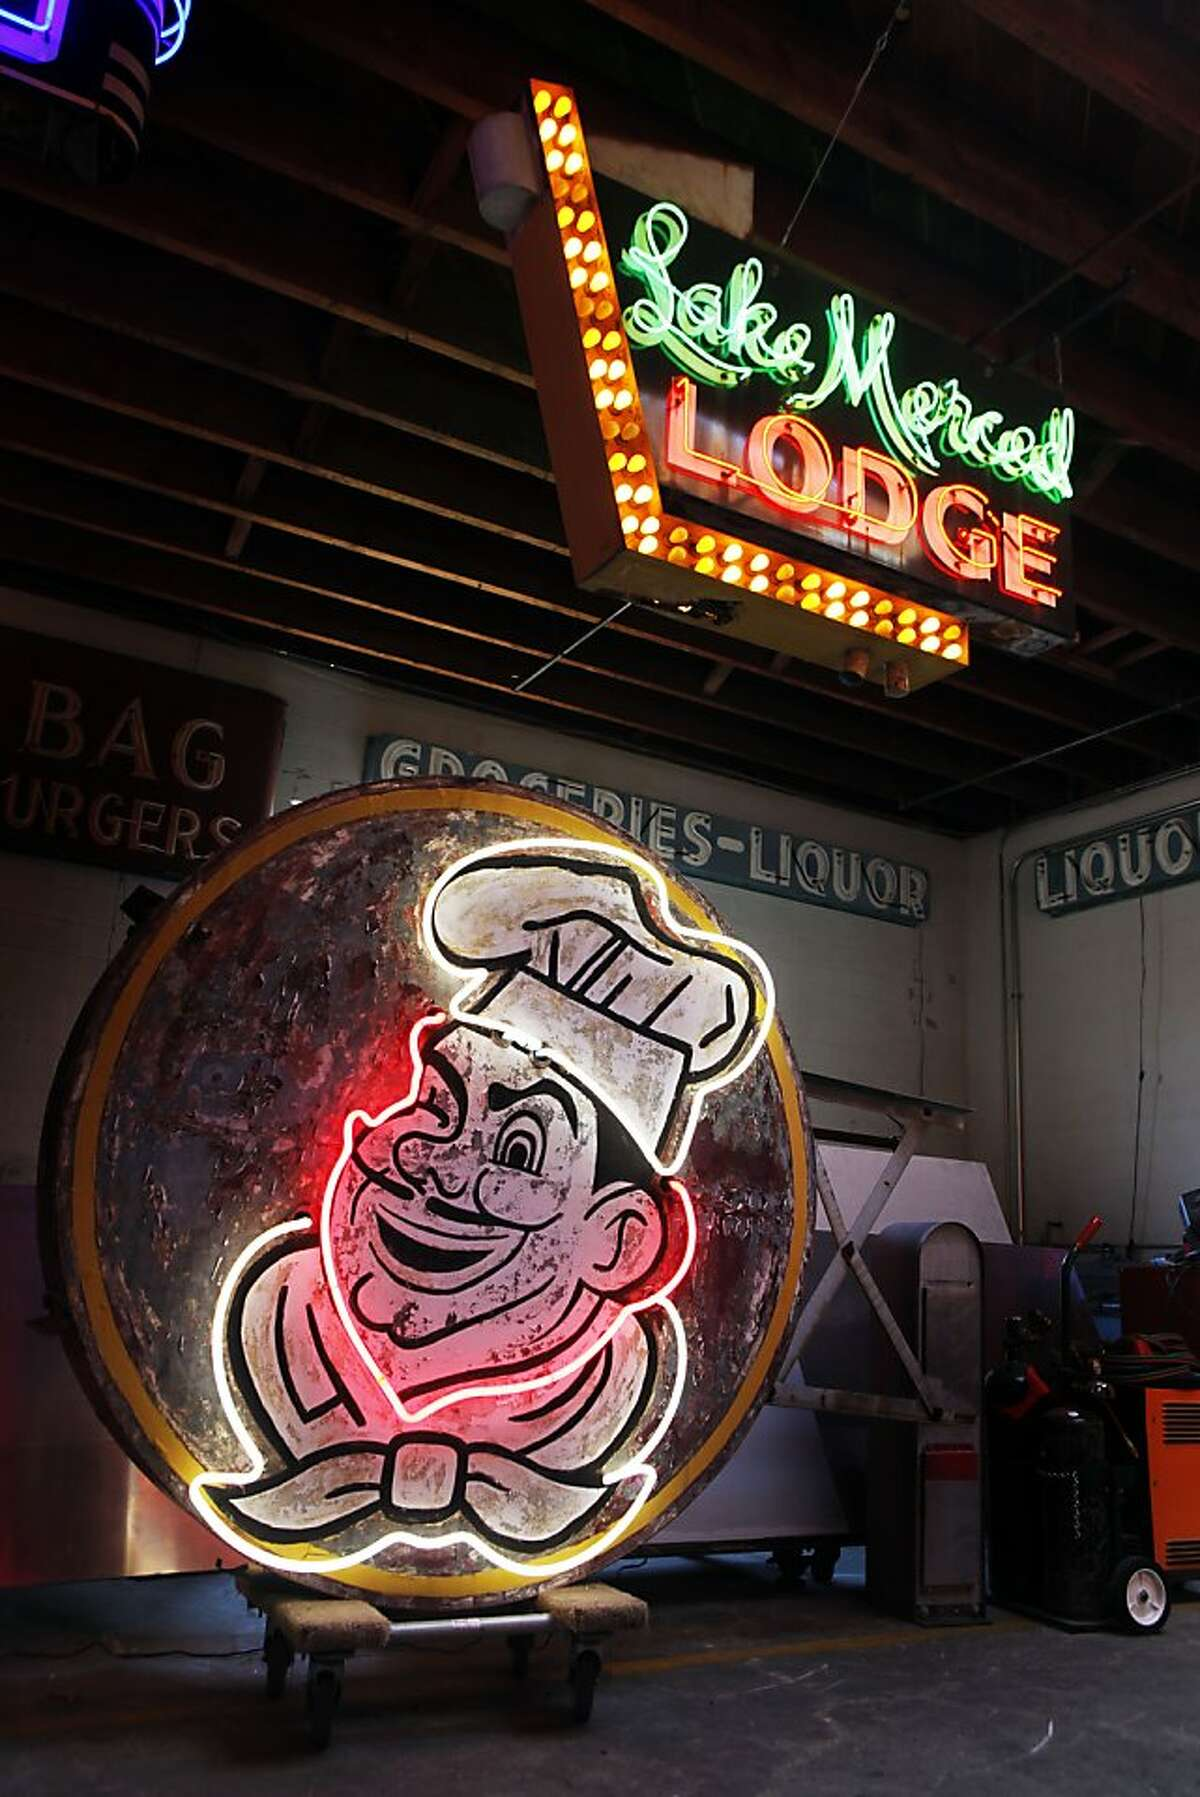 Jim Rizzo has been called the king of neon. He restores old neon, makes new environmentally friendly neon in his 10,000-sq-ft studio, that's more like a neon museum, two old classics from the past, formally from San Francisco are the Lake Merced Lodge sign that hangs above the old San Francisco original Joes sign built in 1957. Wednesday August 31, 2011 in Oakland, California.